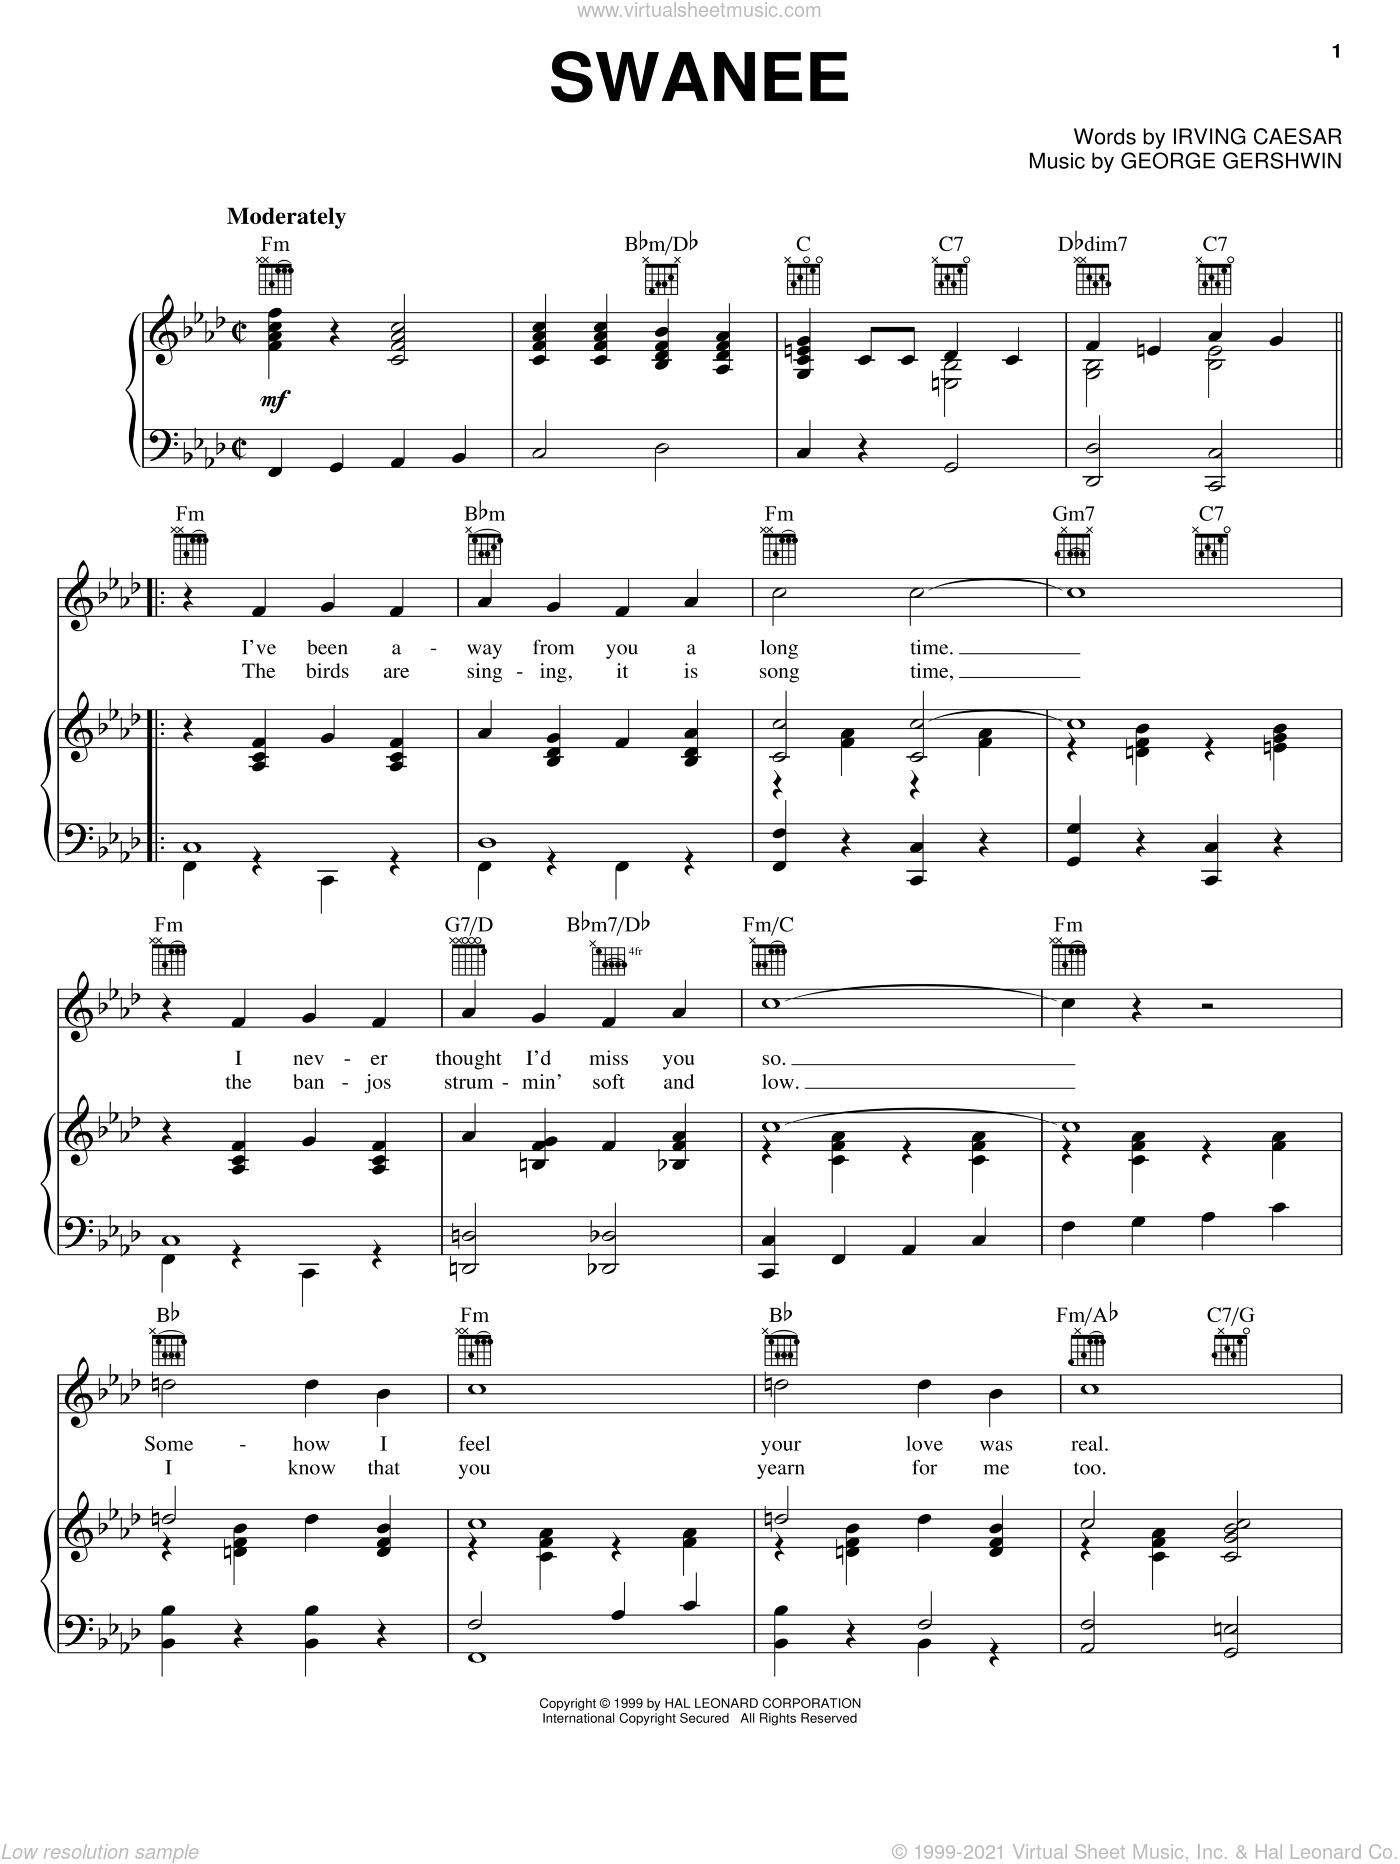 Swanee sheet music for voice, piano or guitar by George Gershwin, Al Jolson, Dean Martin, Judy Garland and Irving Caesar, intermediate skill level